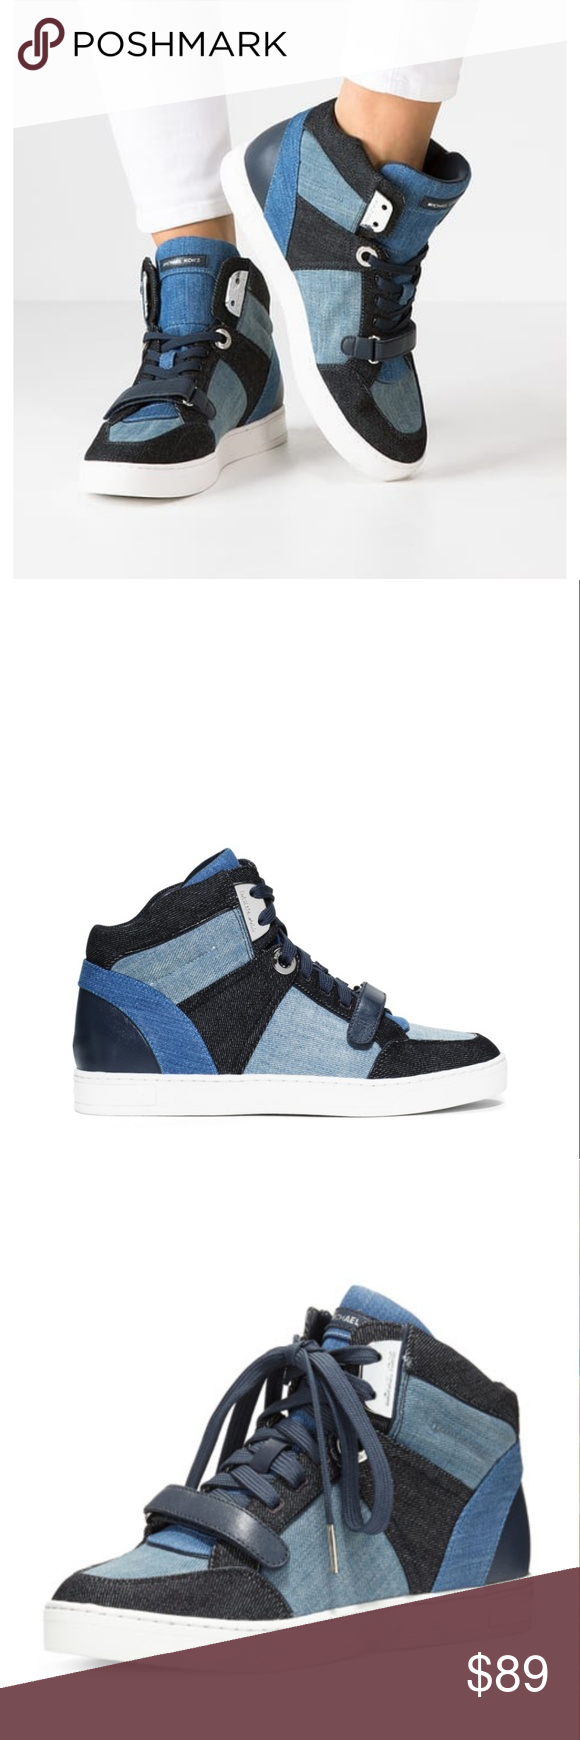 f6a8d2048ba00 Woman Shoes · MICHAEL Michael Kors Ollie High Top Denim Sneaker MICHAEL  Michael Kors Ollie High Top Denim Sneaker